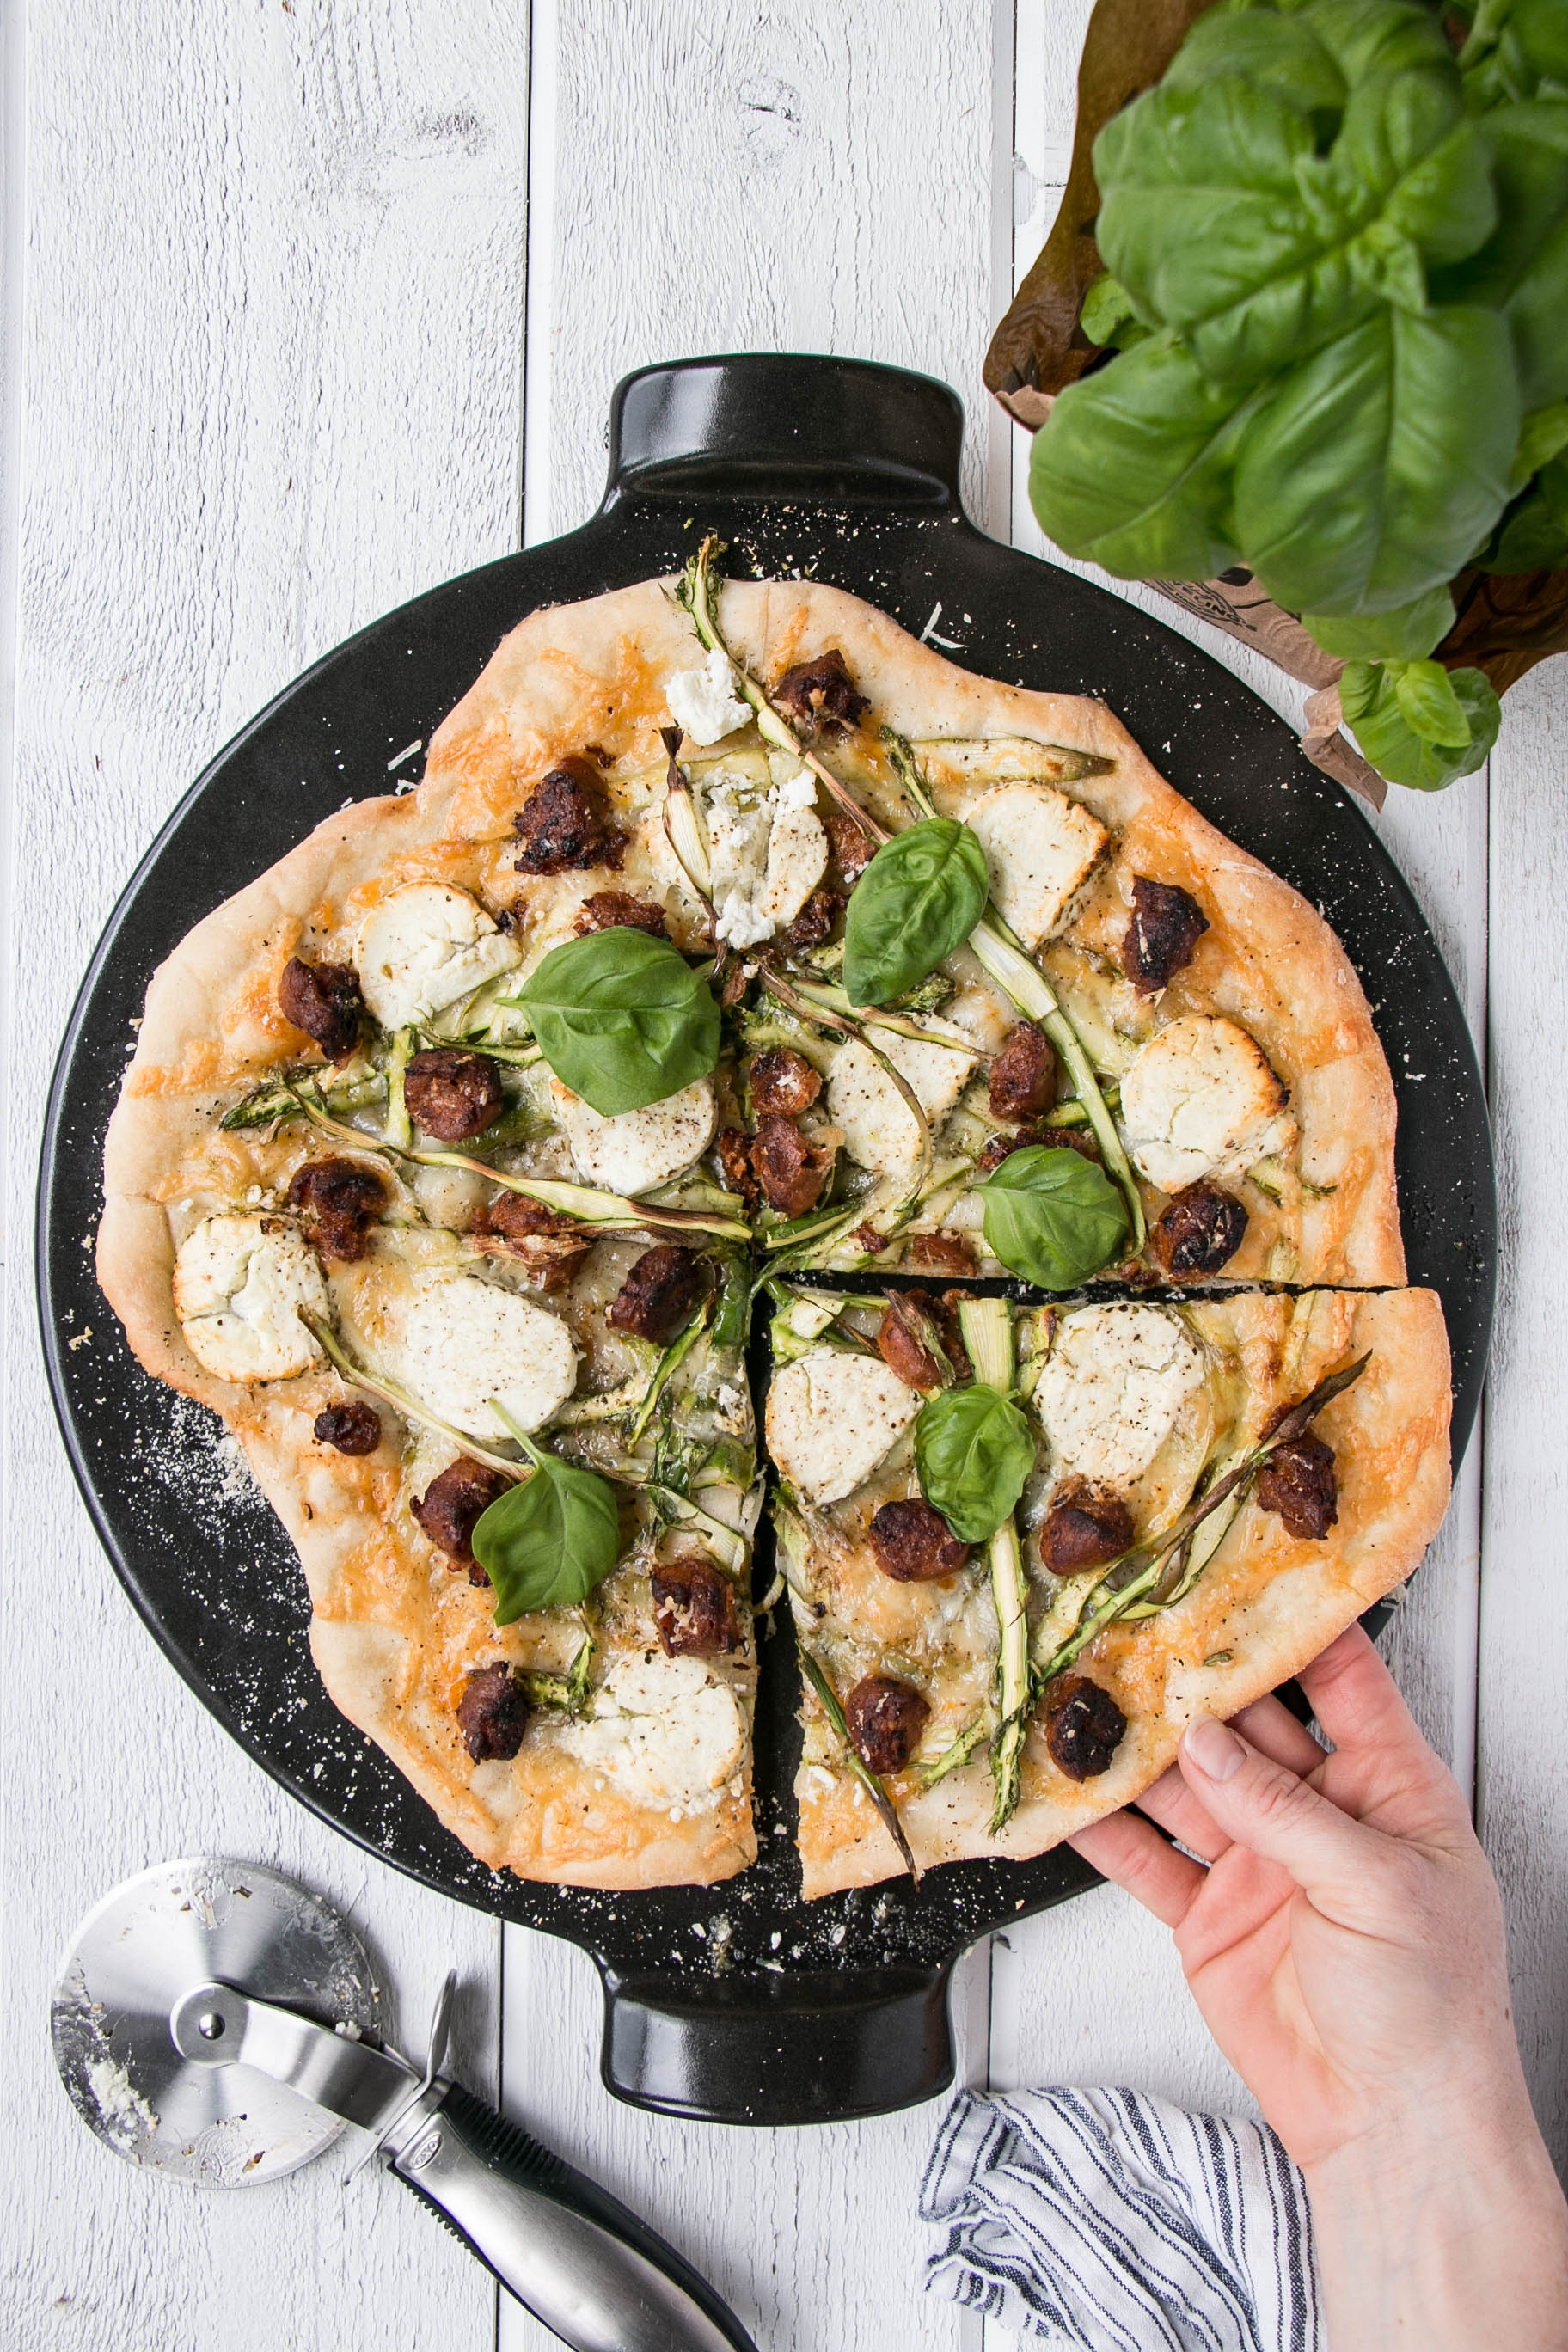 Chorizo, Asparagus, and Goat's Cheese Pizza